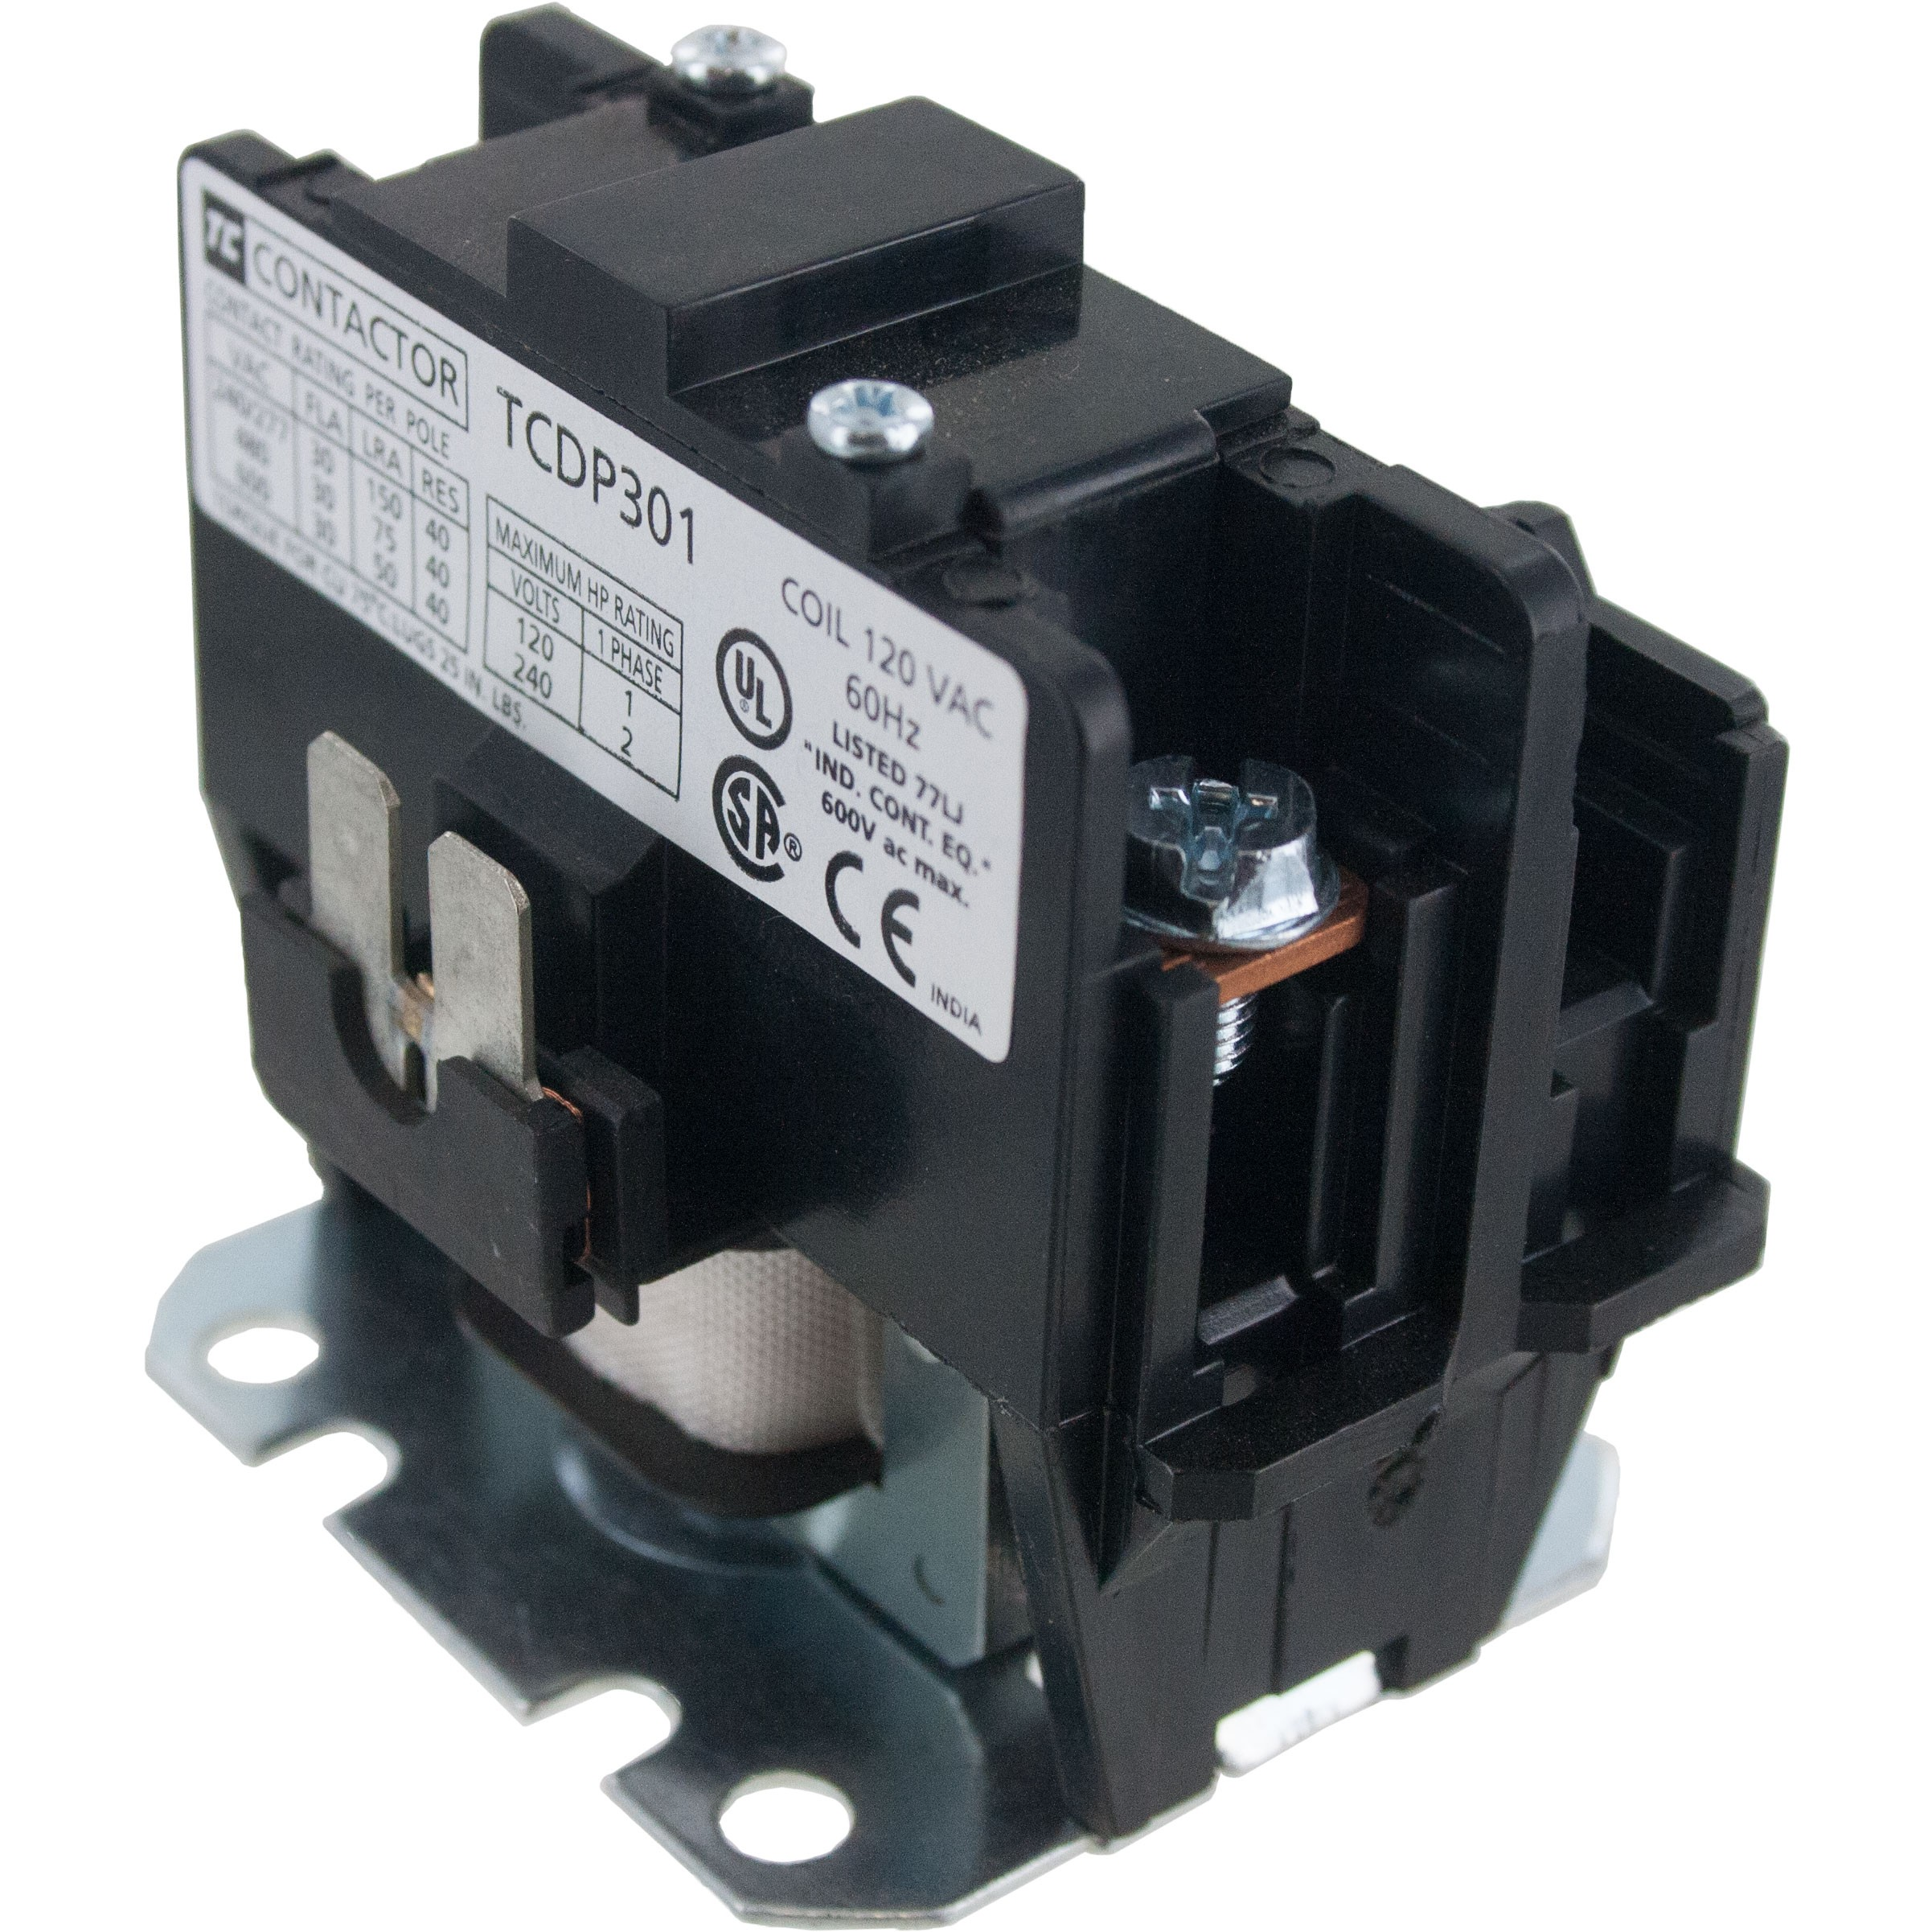 1 Pole Contactor 30 Amp 120vac Coil Elecdirect Nema 3 Phase Wiring